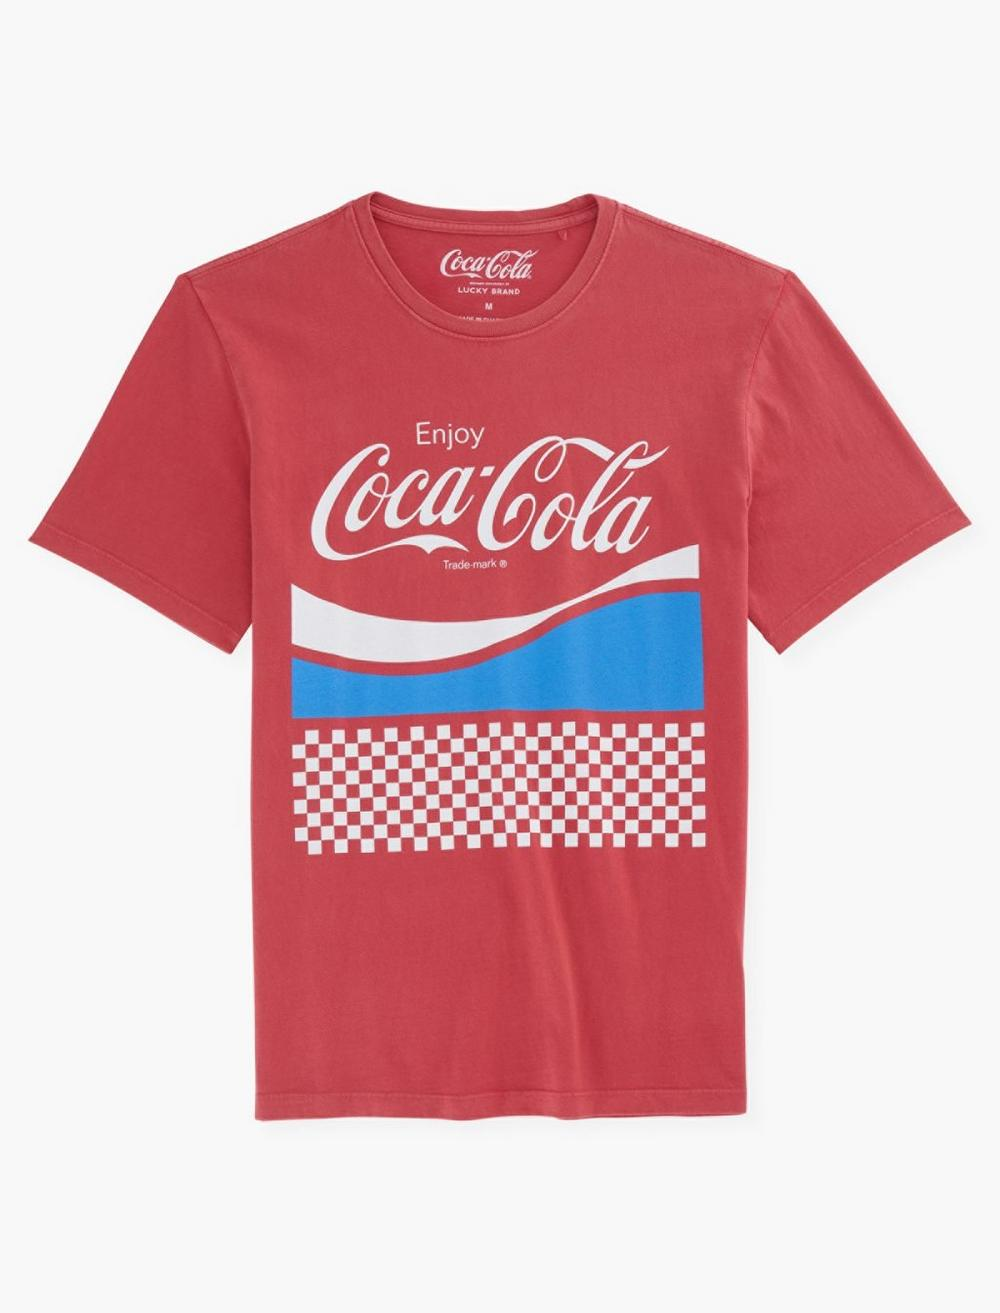 Women's 70s Shirts, Blouses, Hippie Tops Lucky Brand Coca Cola Checker T-Shirt Size Small in Red $49.50 AT vintagedancer.com